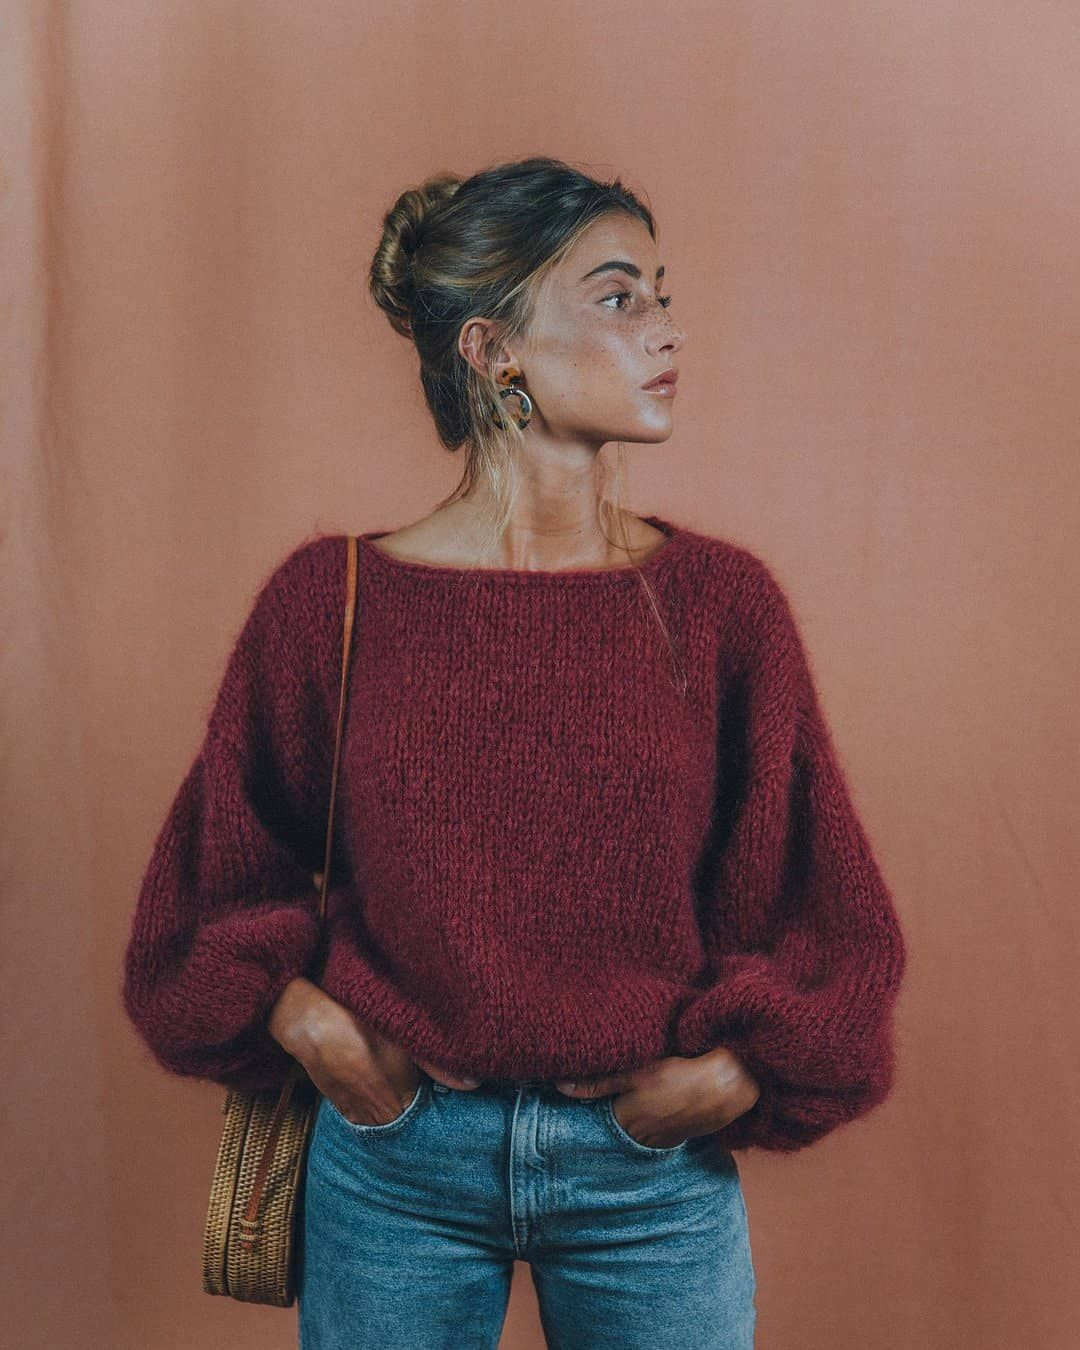 "Blue Anemone on Instagram: ""Burgundy mohair sweater, perfect for the upcoming cold days! Remember each swetaer is handknitted @bymulukita_knits so it takes a few weeks…"" #falloutfitsschool2019"